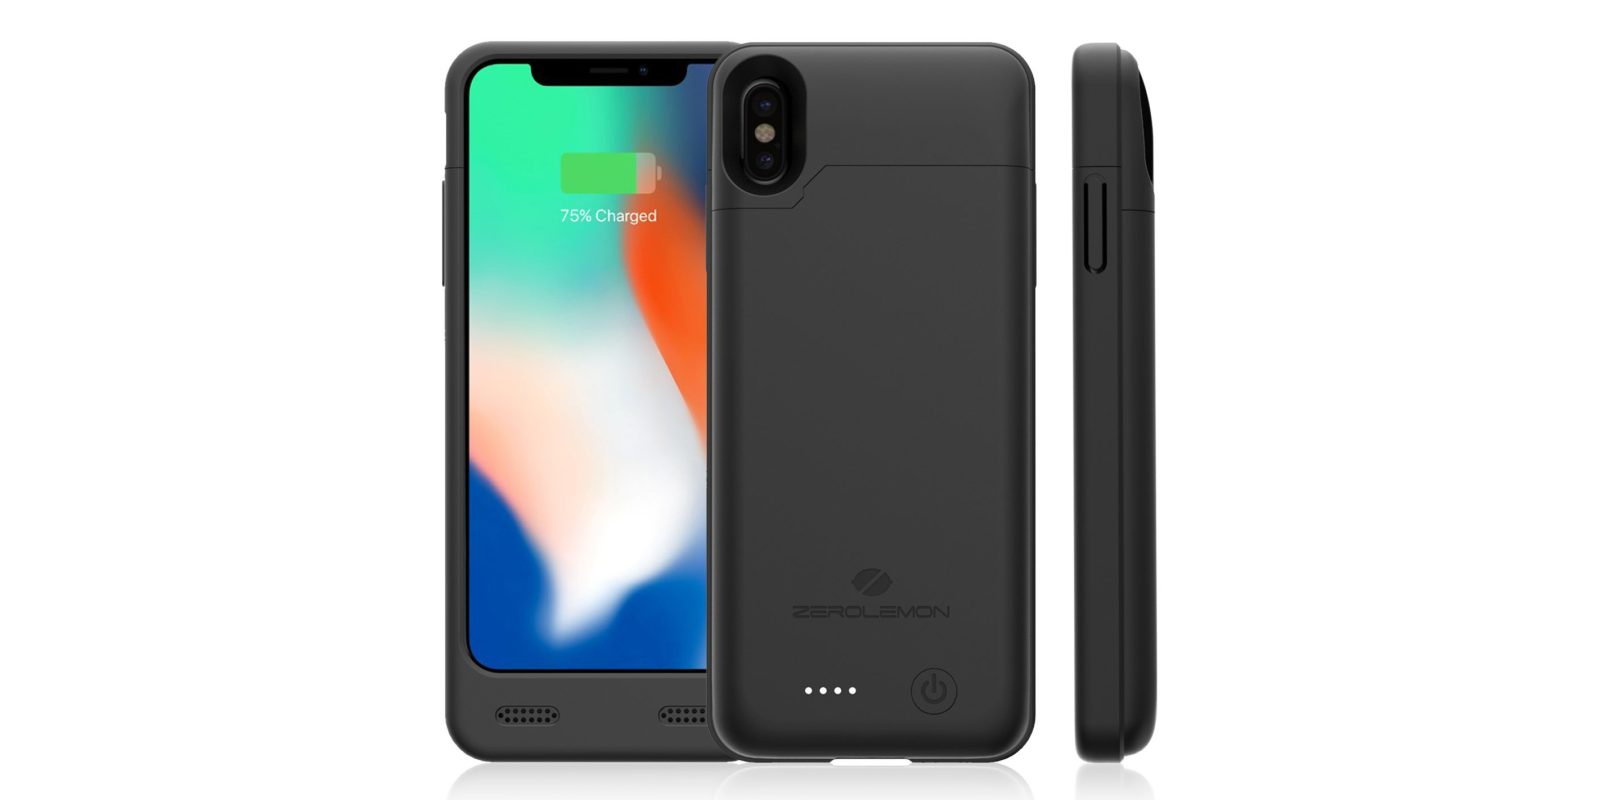 double your iphone x battery life w a zerolemon case from 15 via amazon 9to5toys. Black Bedroom Furniture Sets. Home Design Ideas